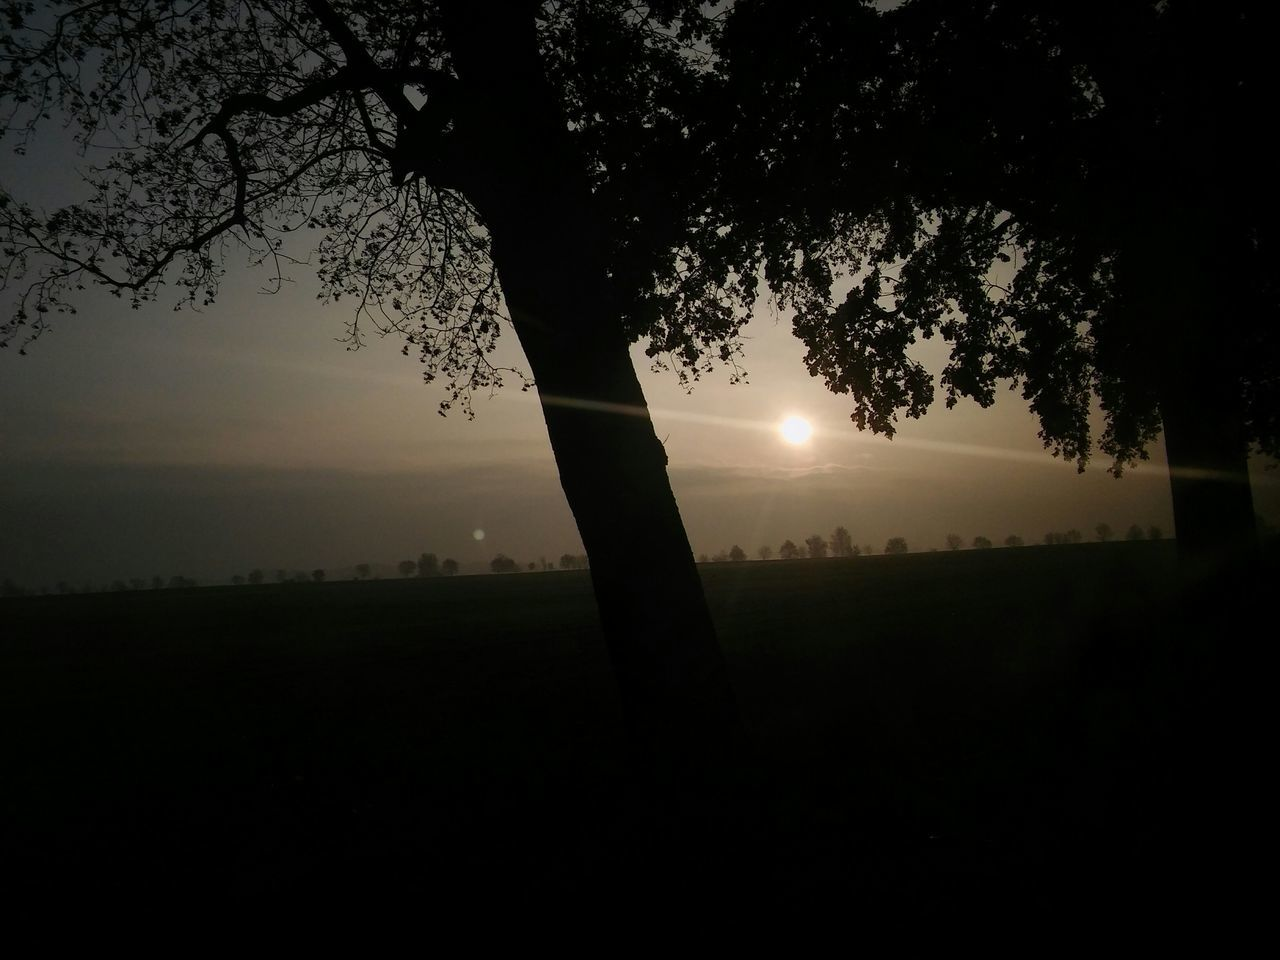 Silhouette Of Trees On Landscape At Sunset